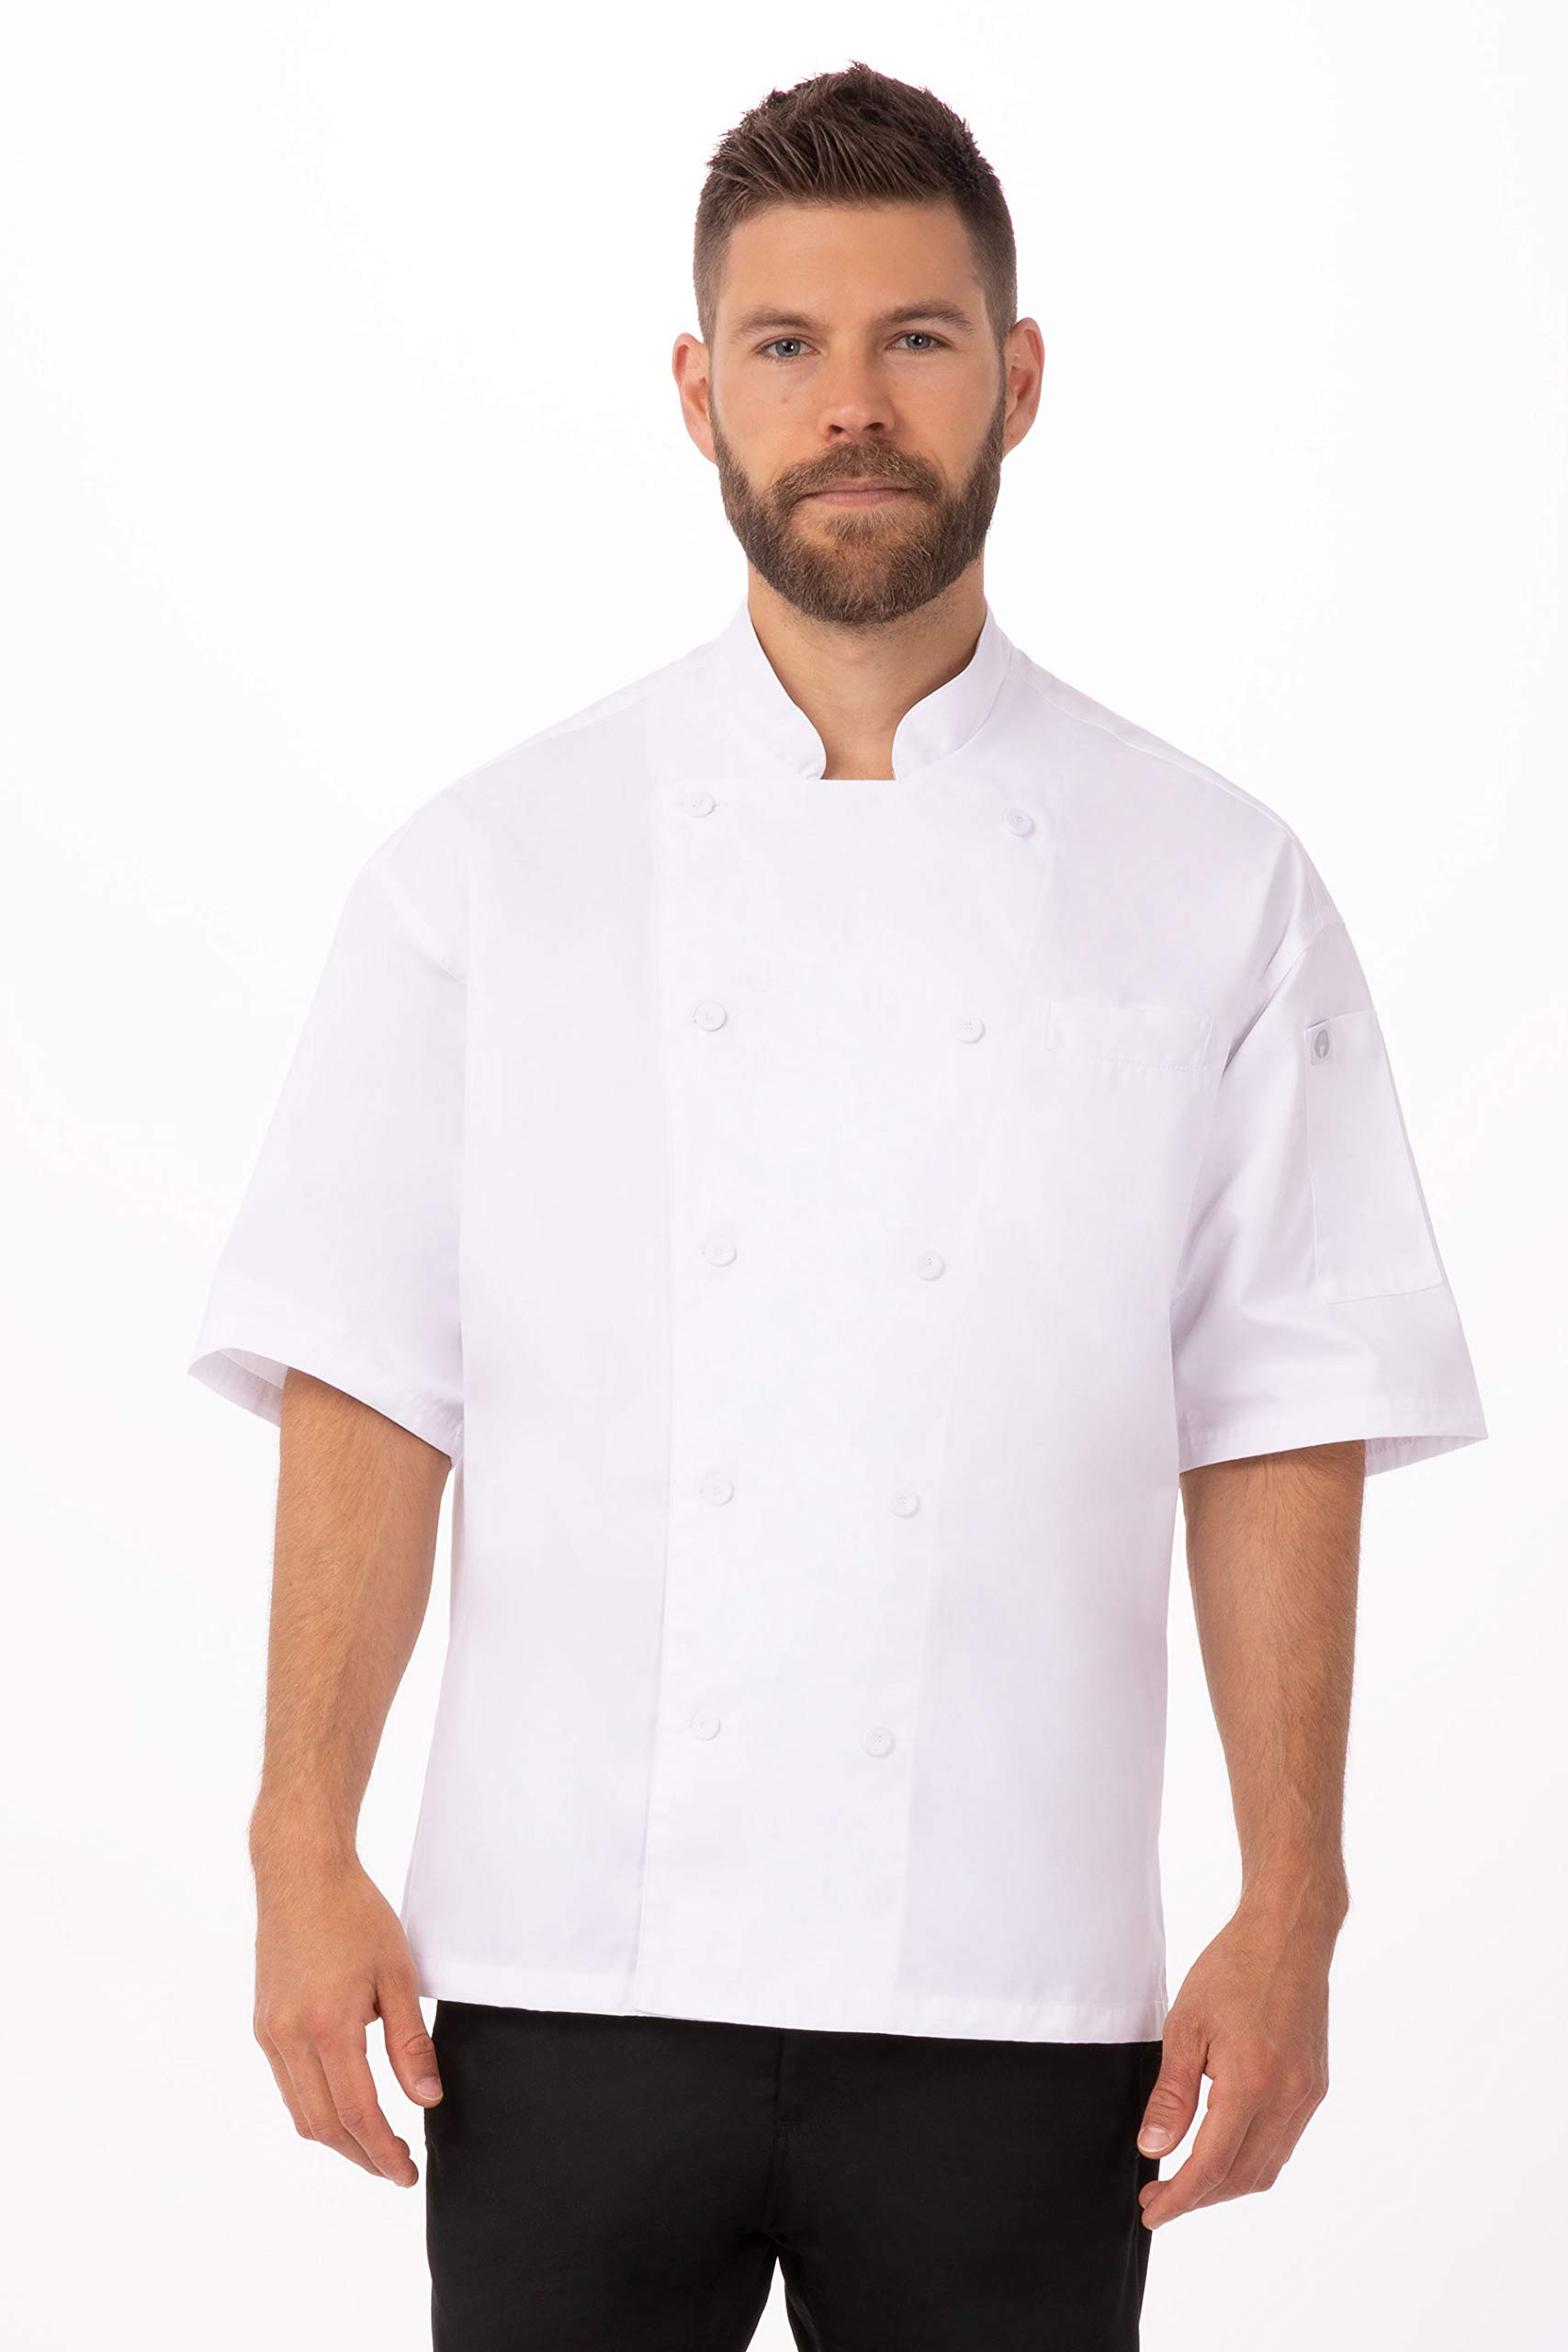 Chef Works Unisex Palermo Executive Chef Coat, White, Small by Chef Works